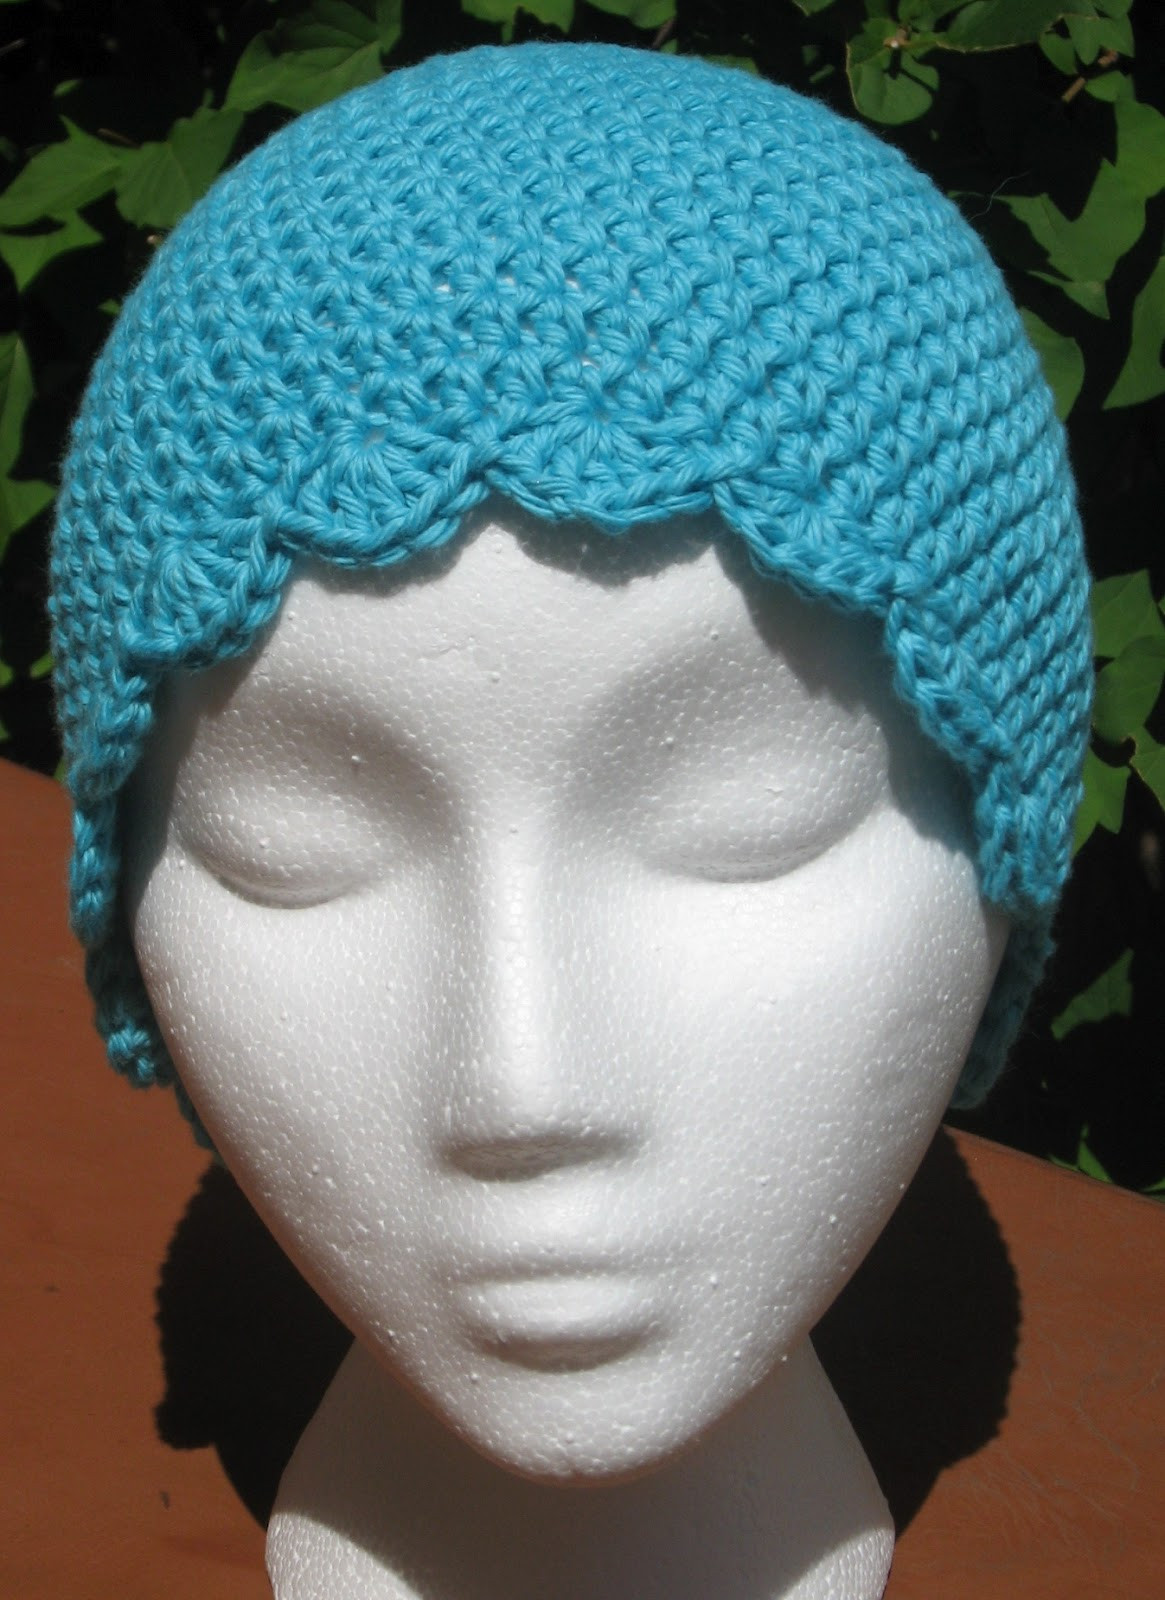 Elegant Crochet Projects Chemo Hats Set 2 Crochet Chemo Hats Patterns Of Marvelous 45 Ideas Crochet Chemo Hats Patterns